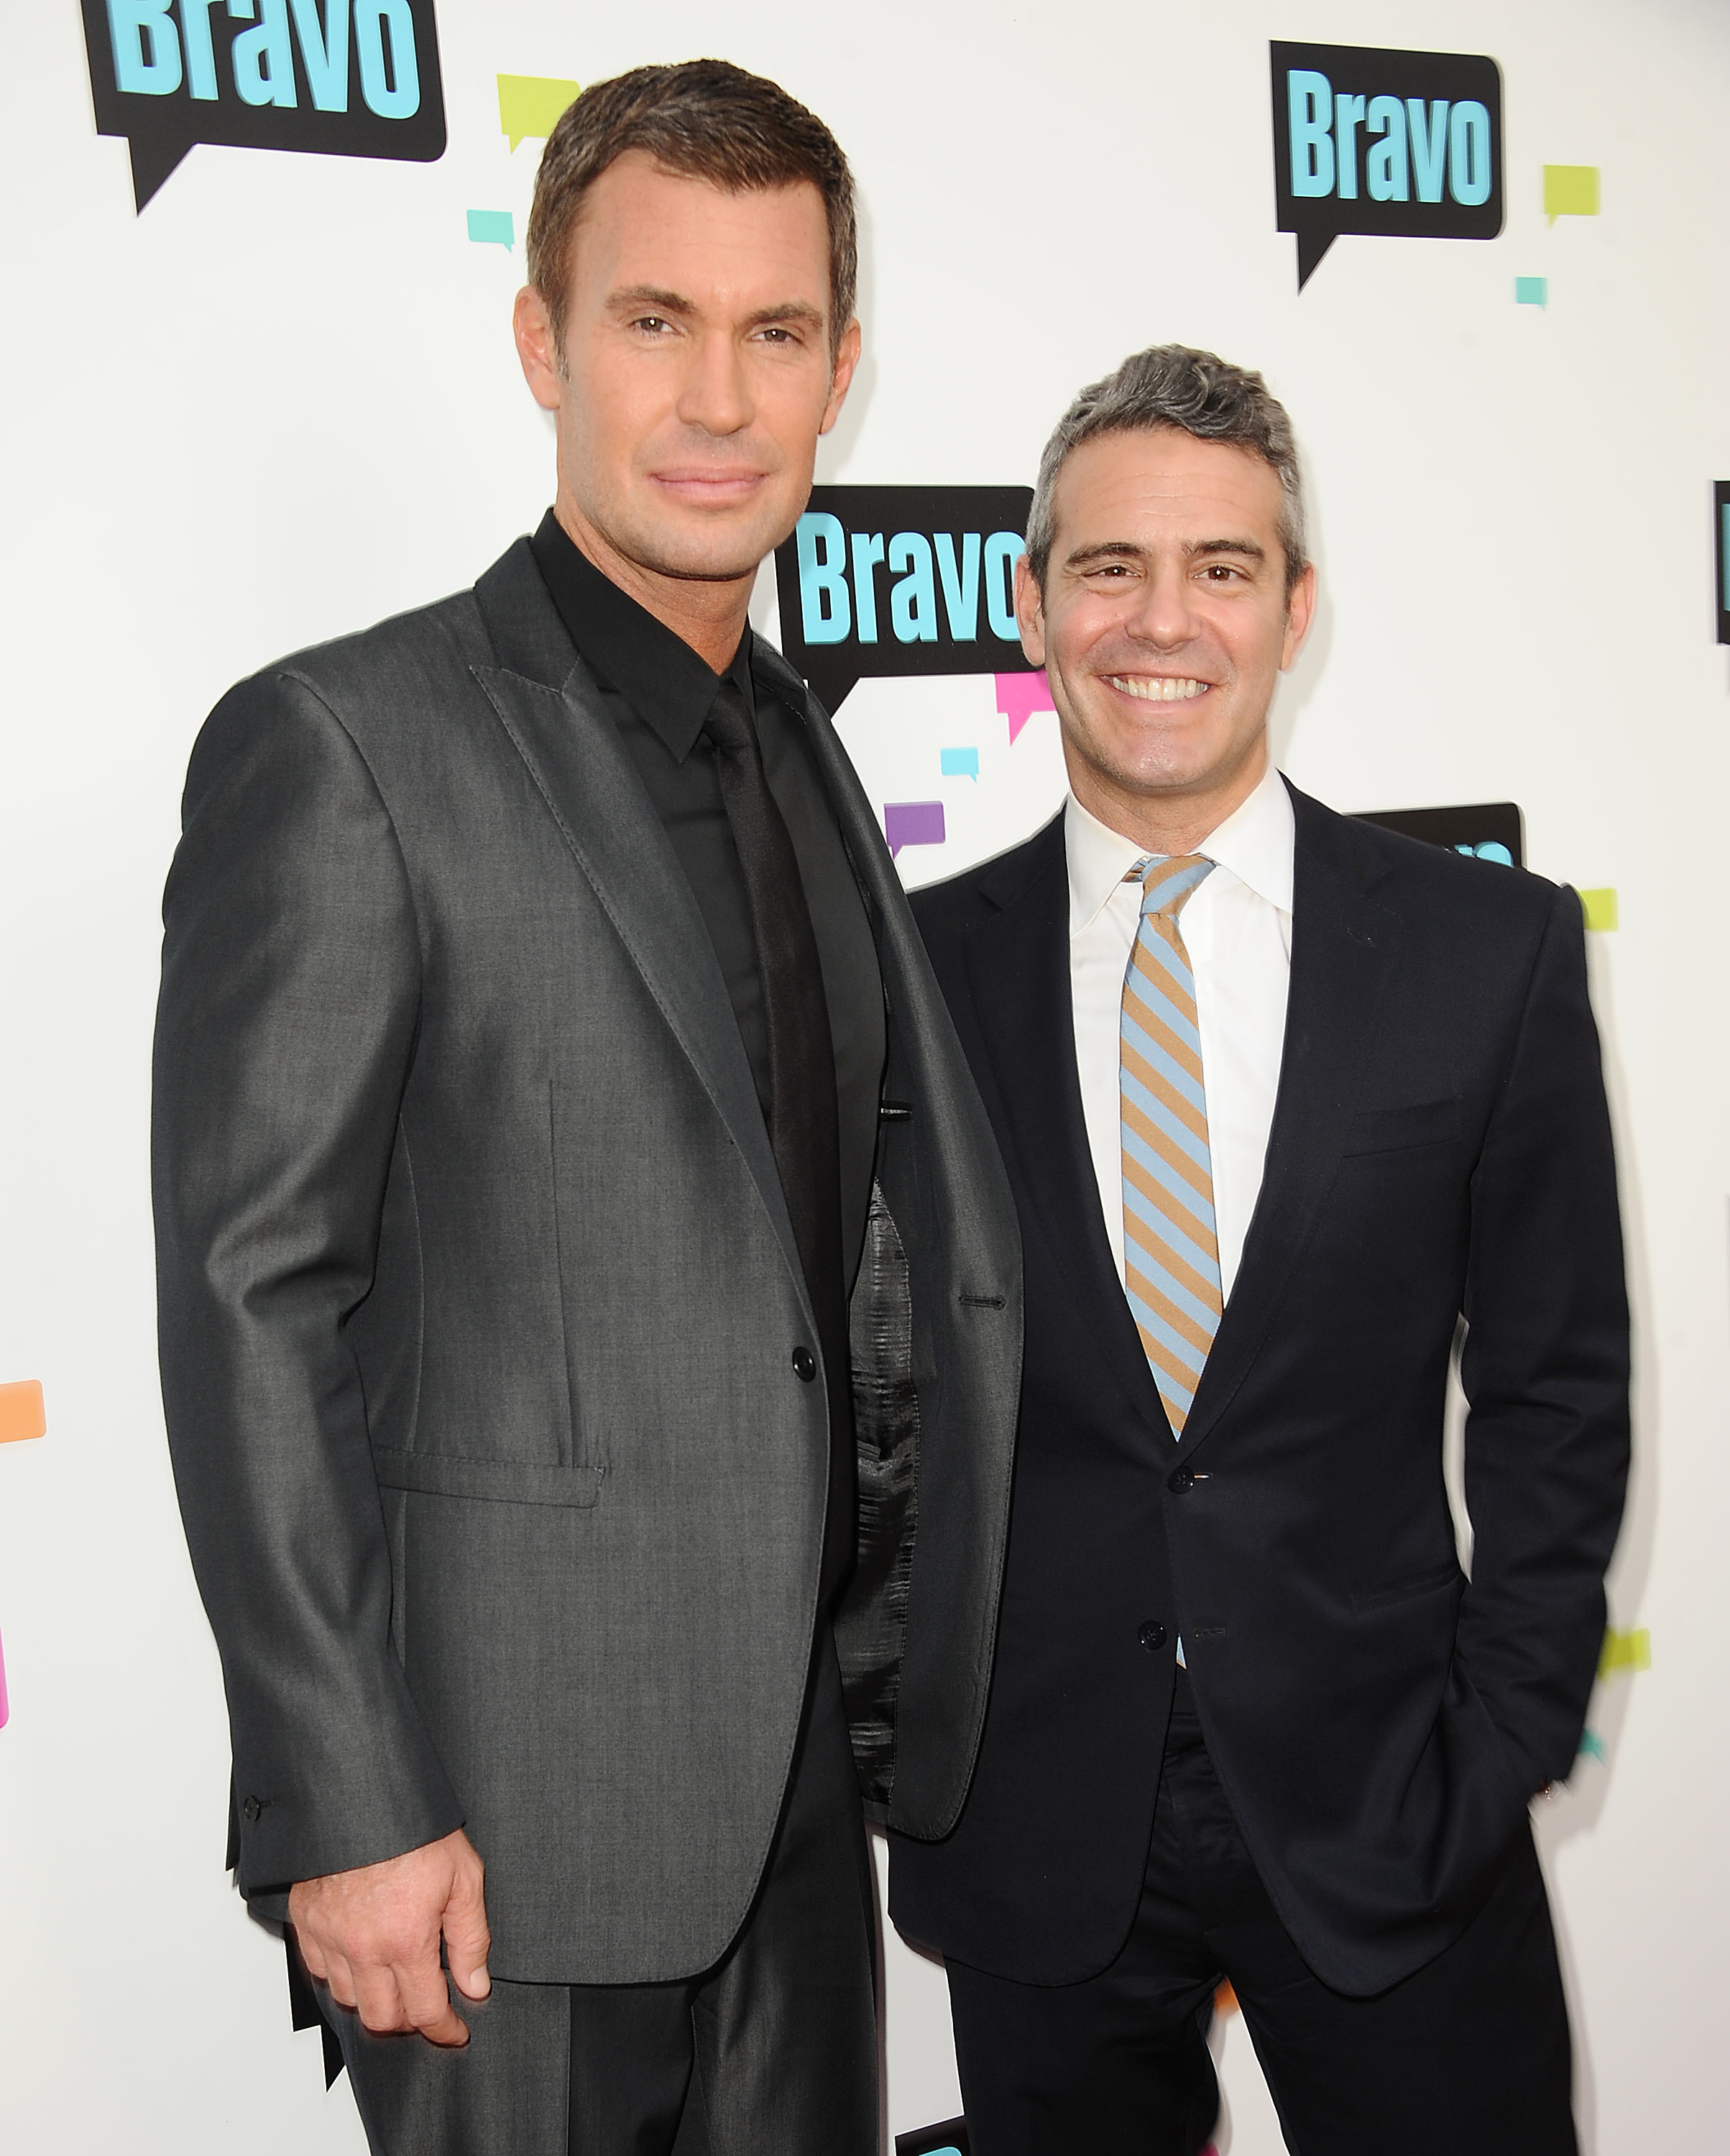 Jeff Lewis and Andy Cohen attend Bravo Media's 2013 For Your Consideration Emmy event at Leonard H. Goldenson Theatre in Los Angeles on May 22, 2013.